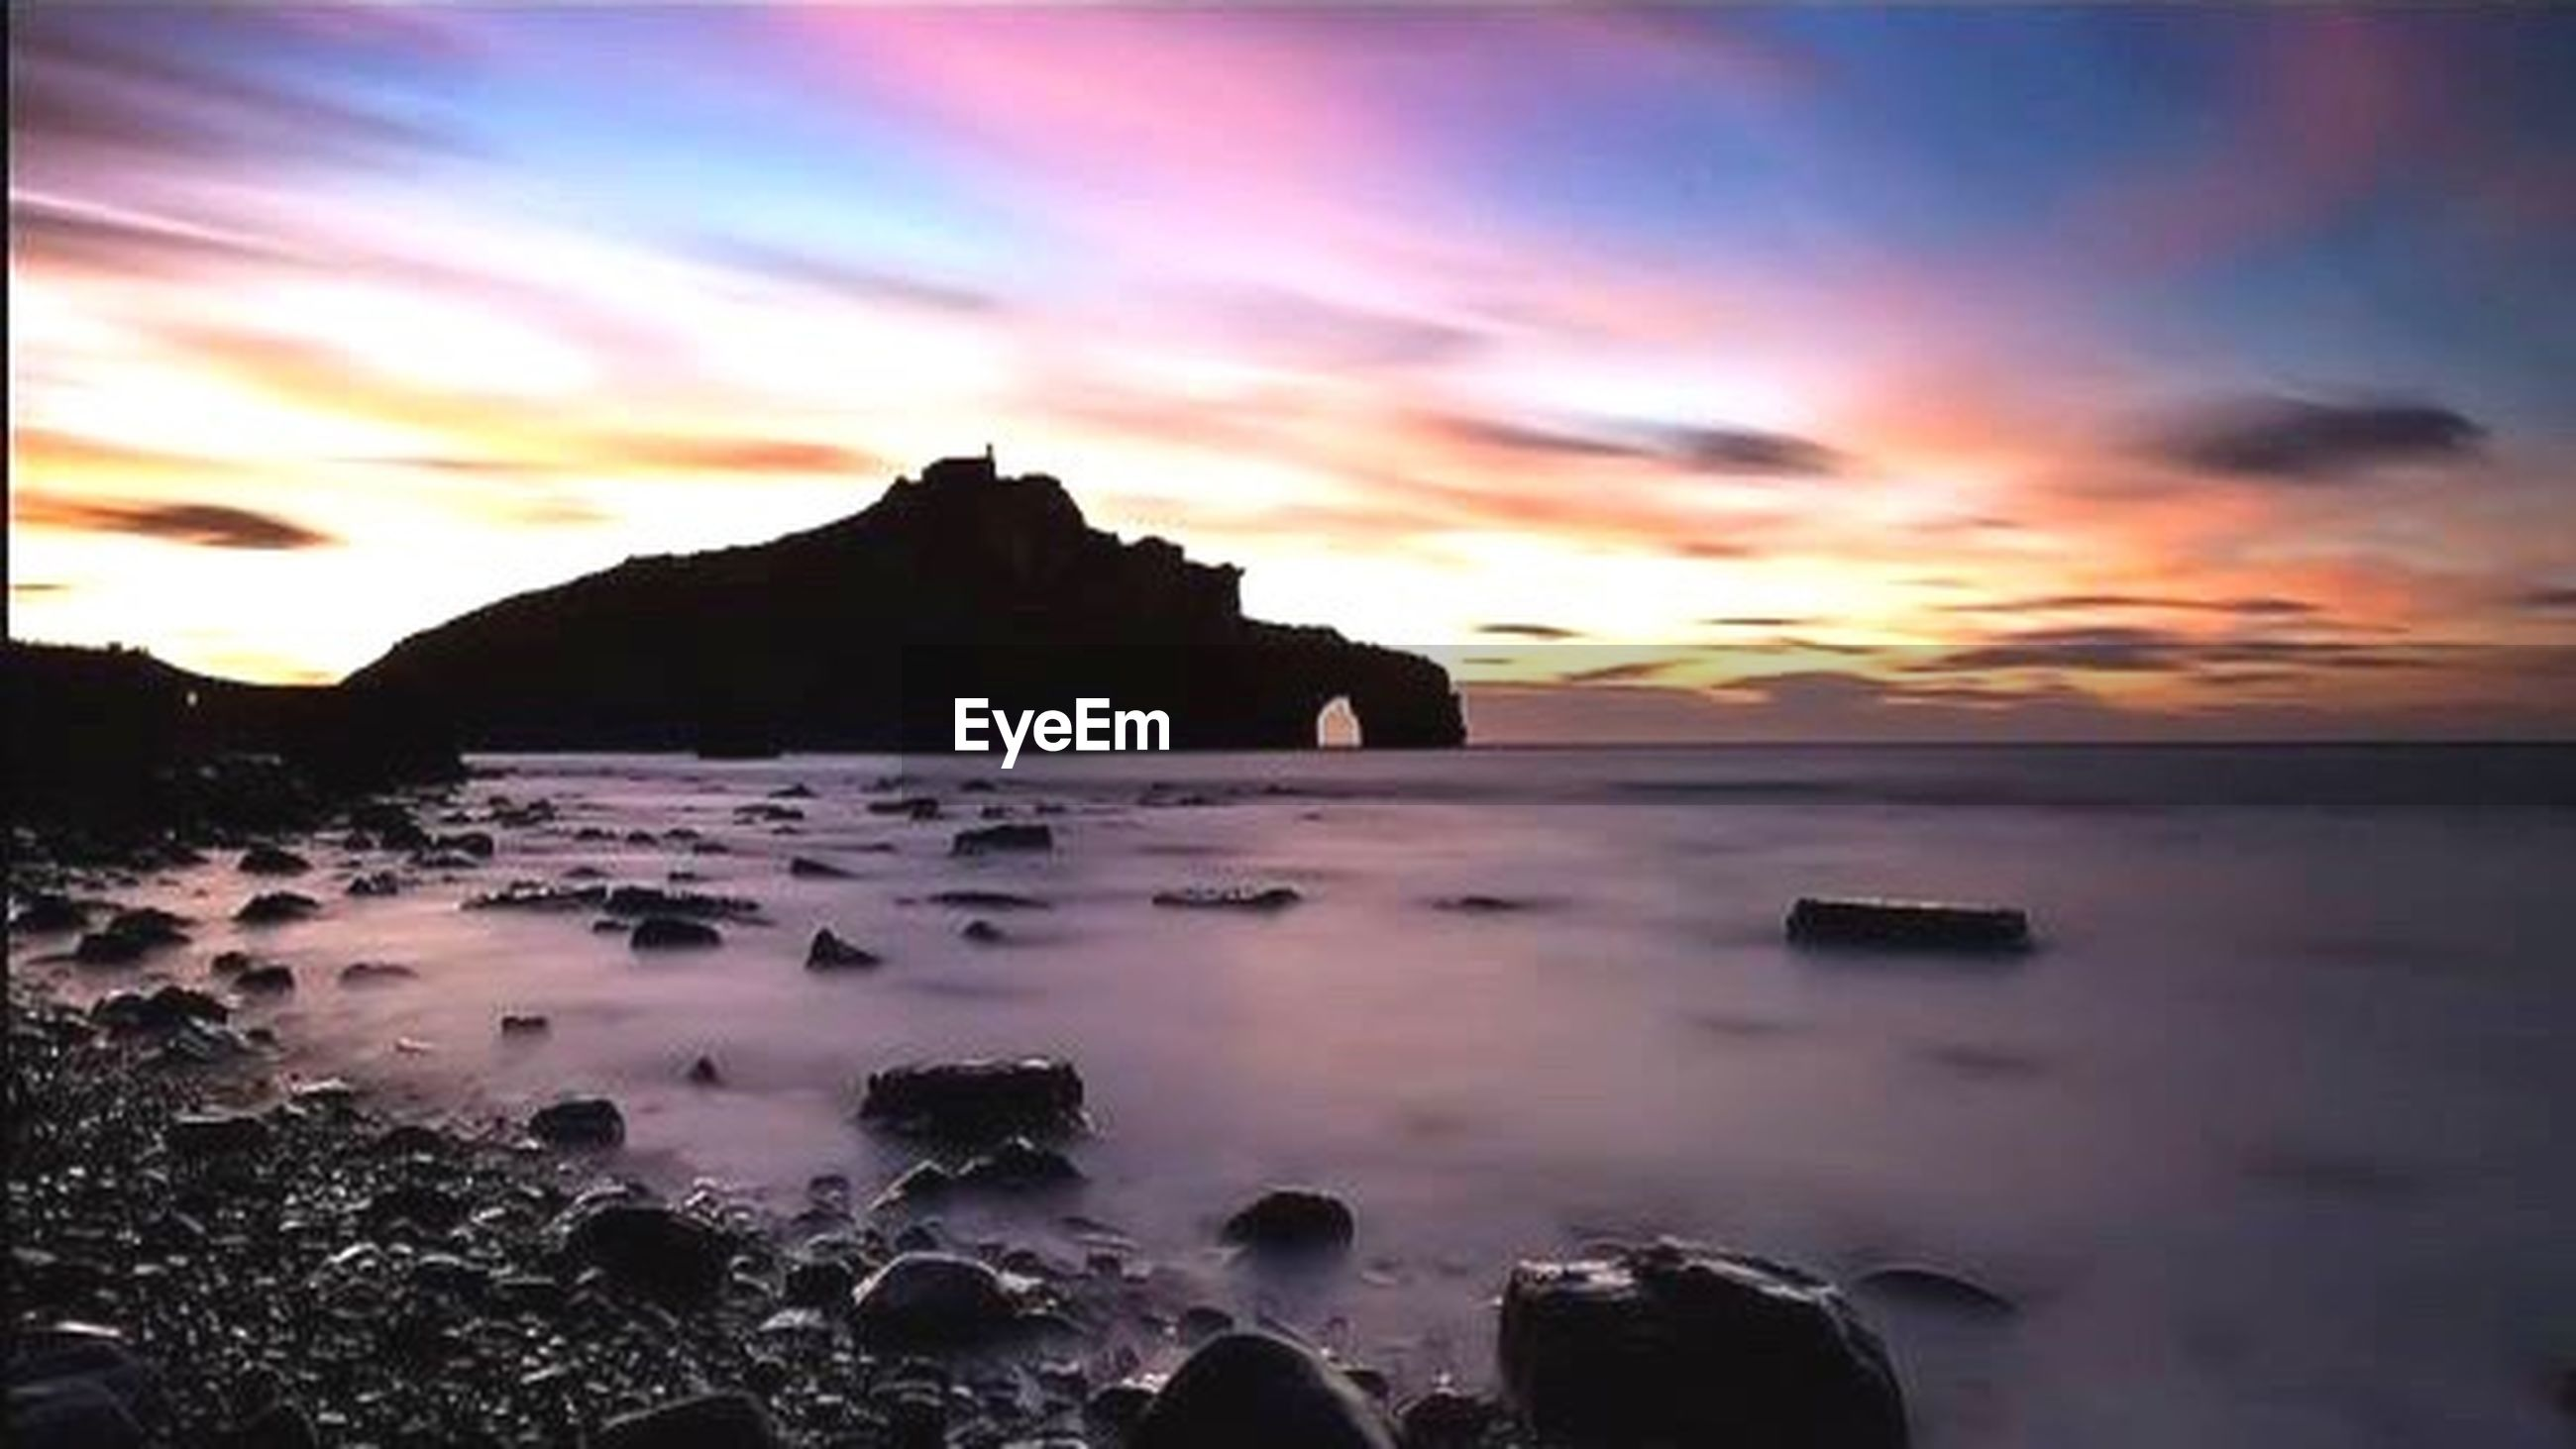 sunset, water, scenics, sea, sky, beauty in nature, tranquil scene, tranquility, orange color, cloud - sky, rock - object, nature, idyllic, beach, horizon over water, shore, rock formation, dramatic sky, dusk, cloud